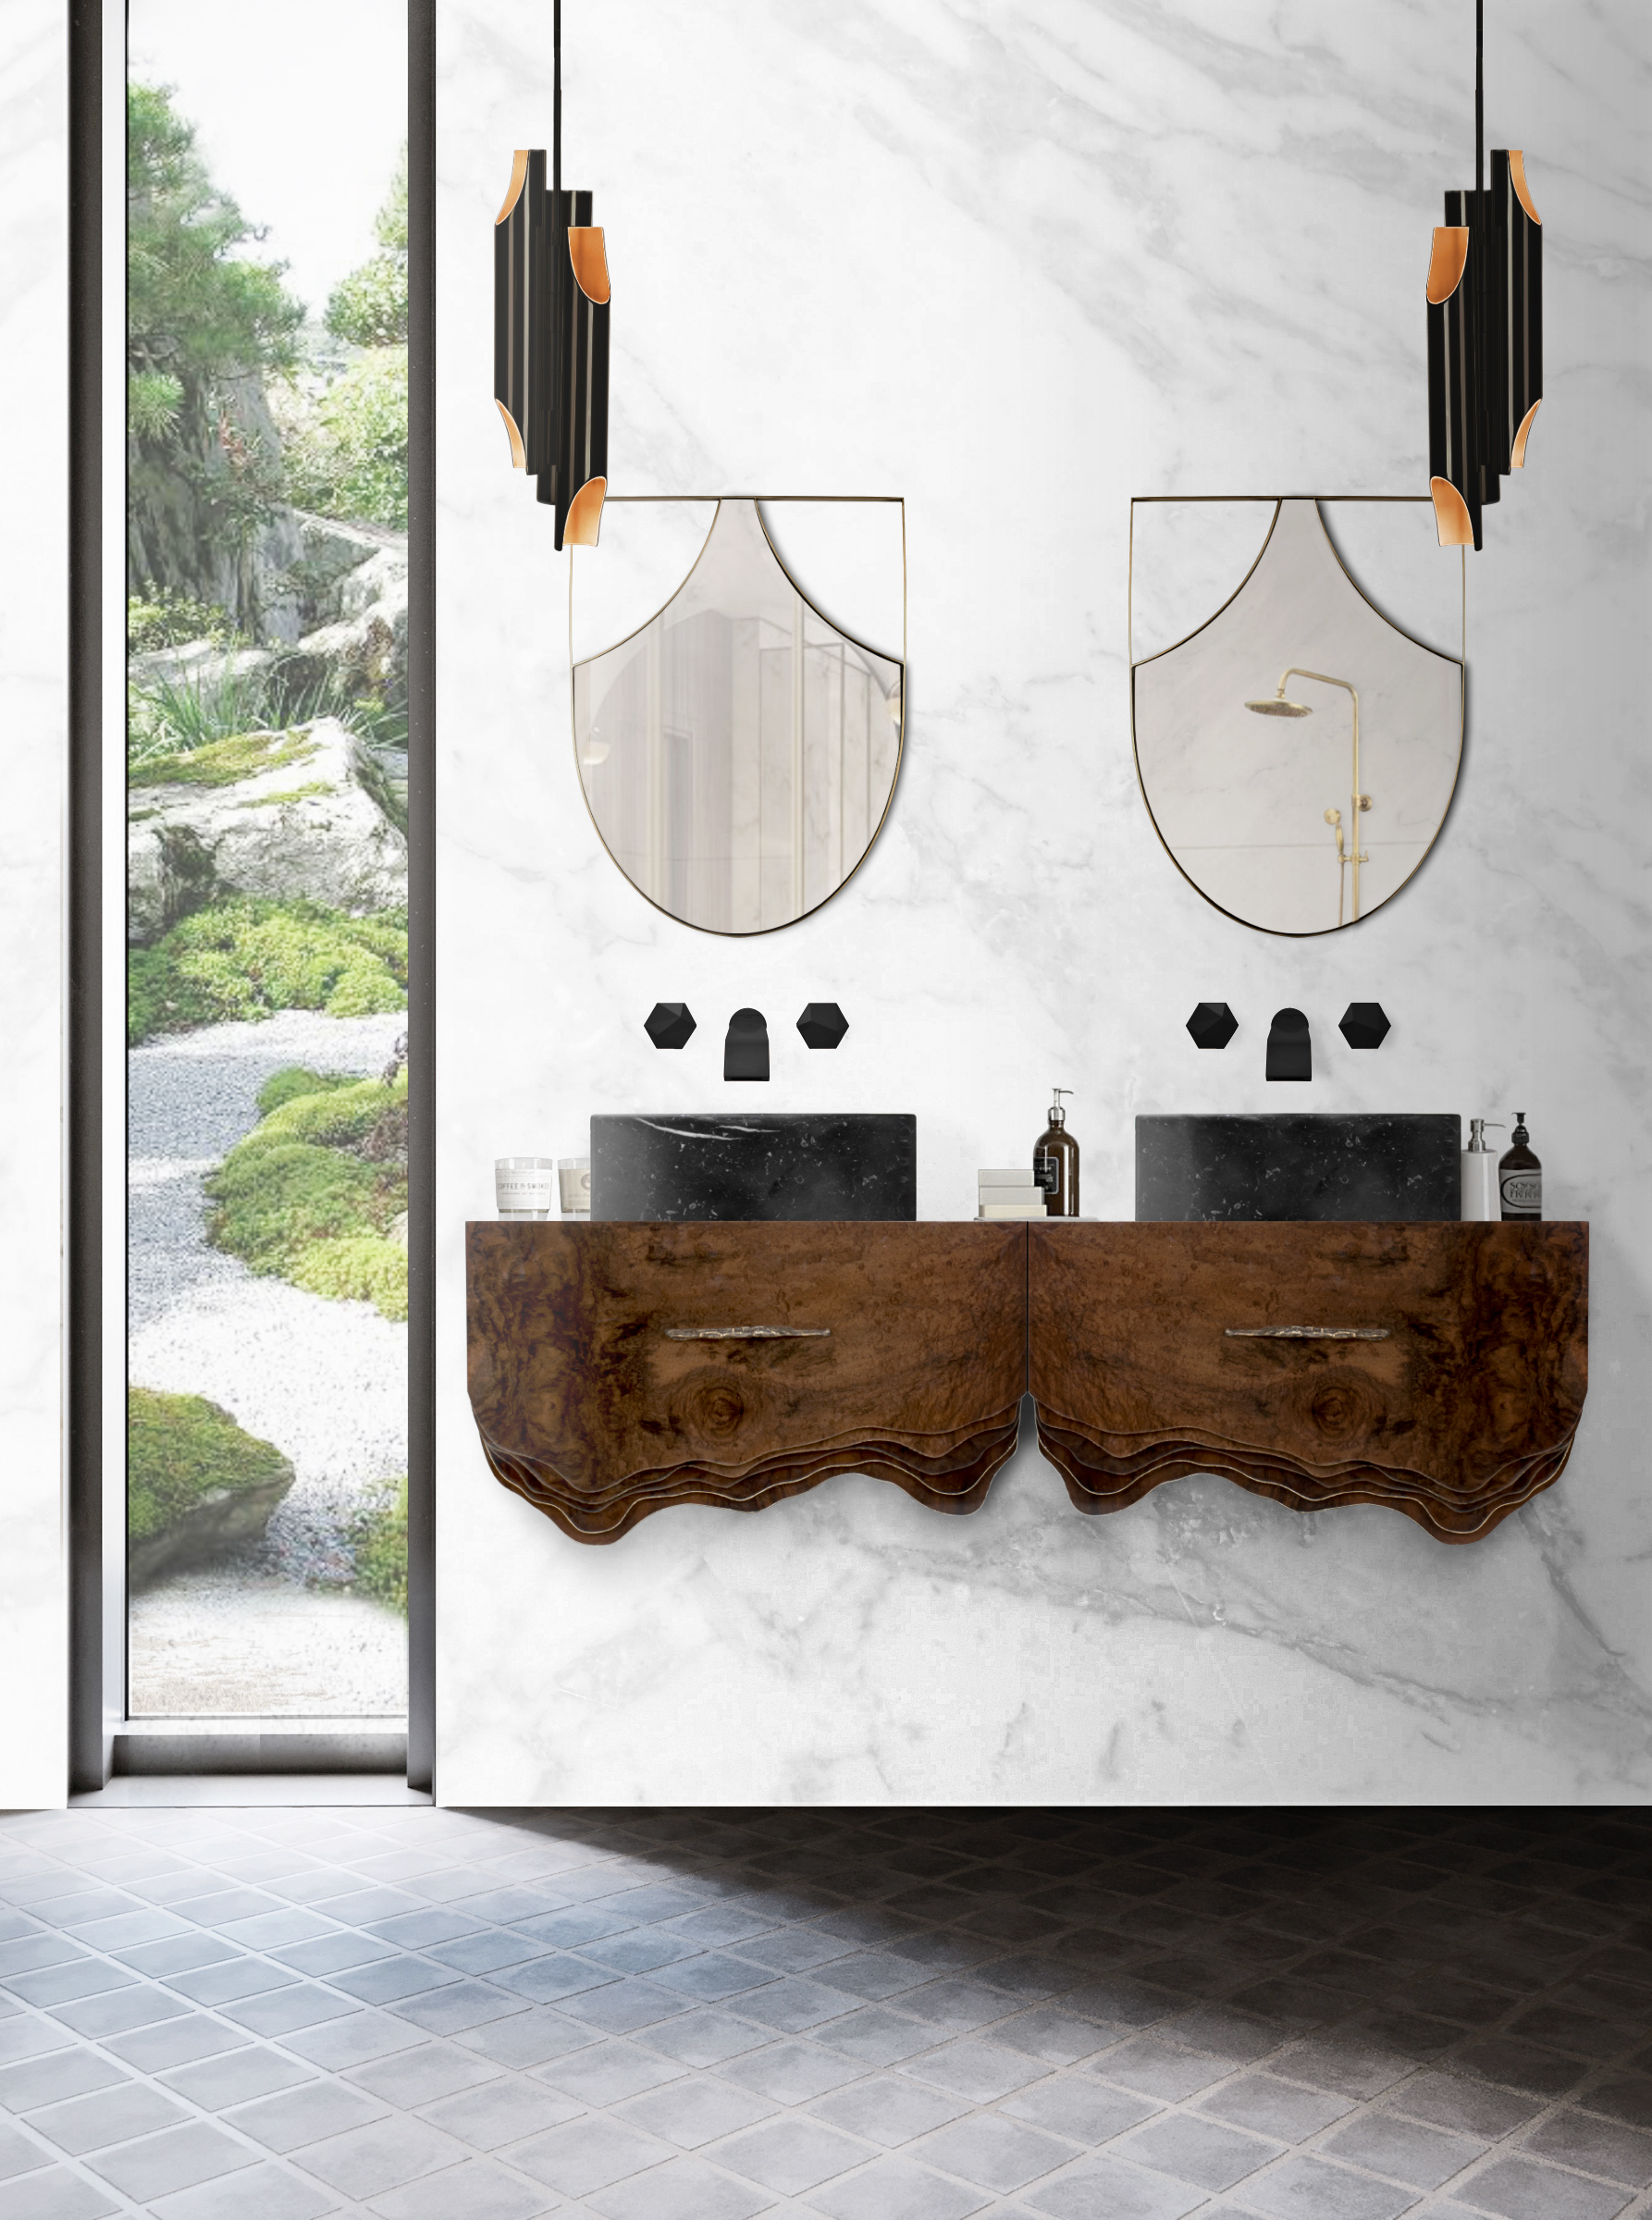 Bathrooms With Wooden Details, maison valentina, wood, bathrooms, design bathrooms with wooden details Bathrooms With Wooden Details : 3 Innovative Beautiful Ideas Bathroom with Wood Accents Huang Suspension Cabinet